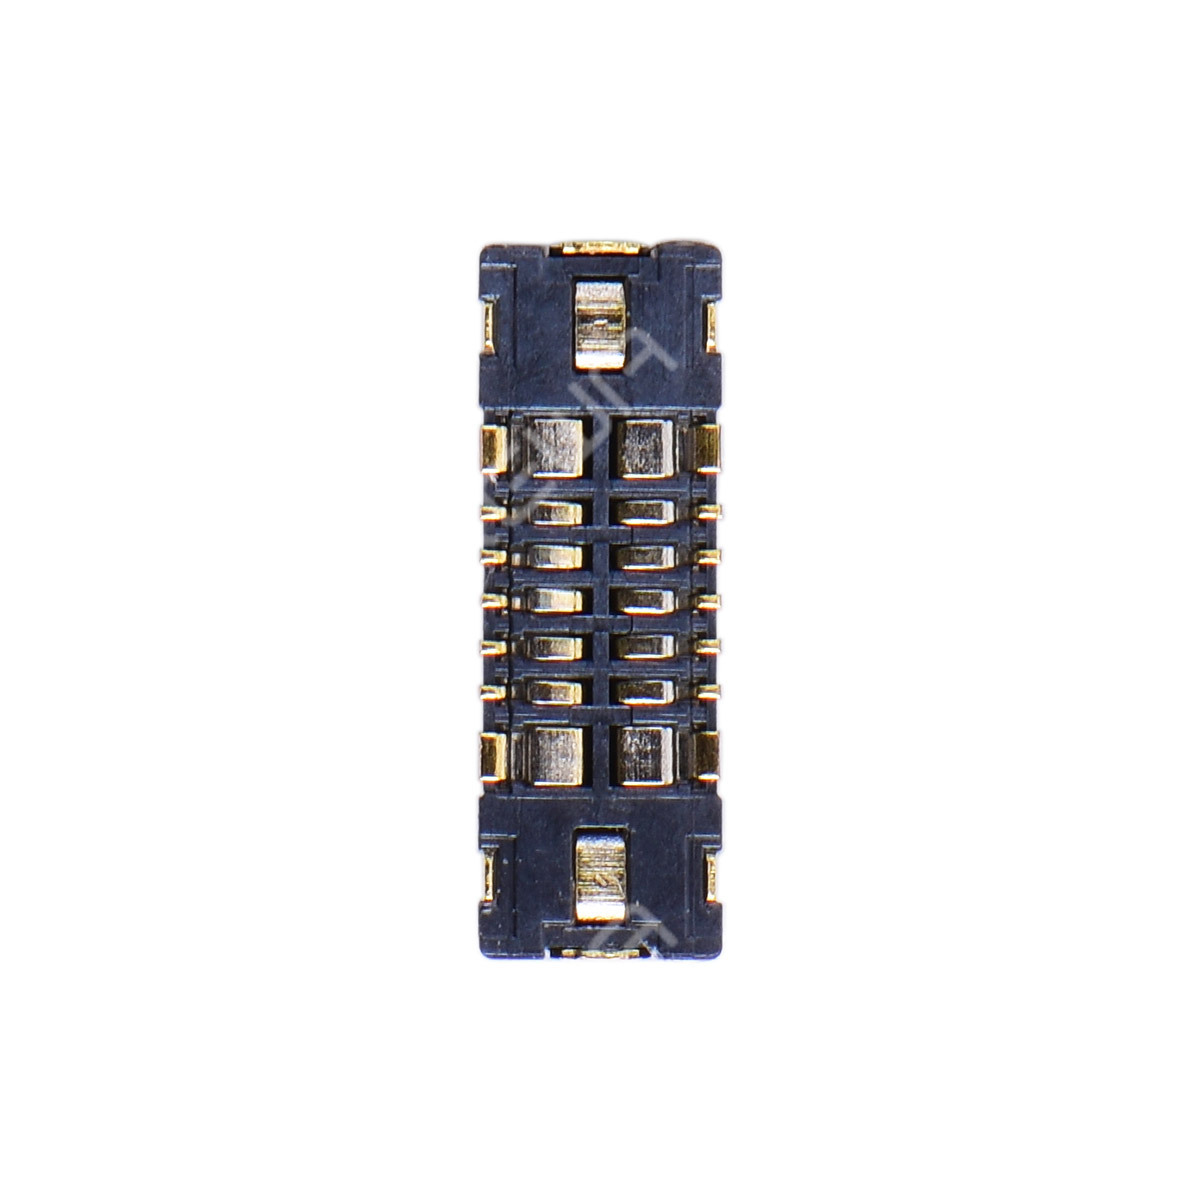 Dot Projector Connector (J7800)  Replacement For iPhone 11